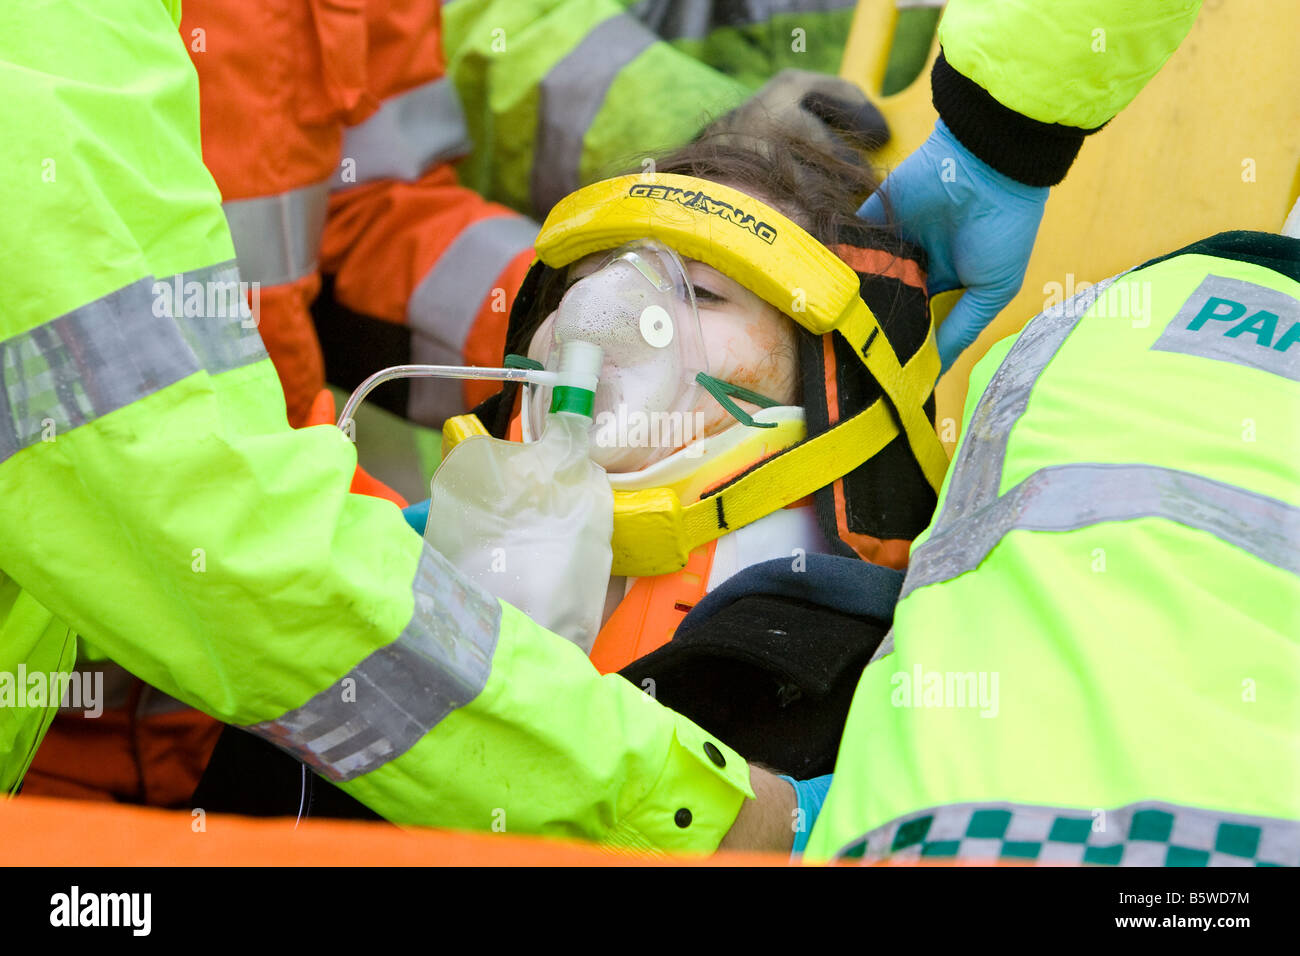 Road traffic accident simulation at local college aiming to deliver ...